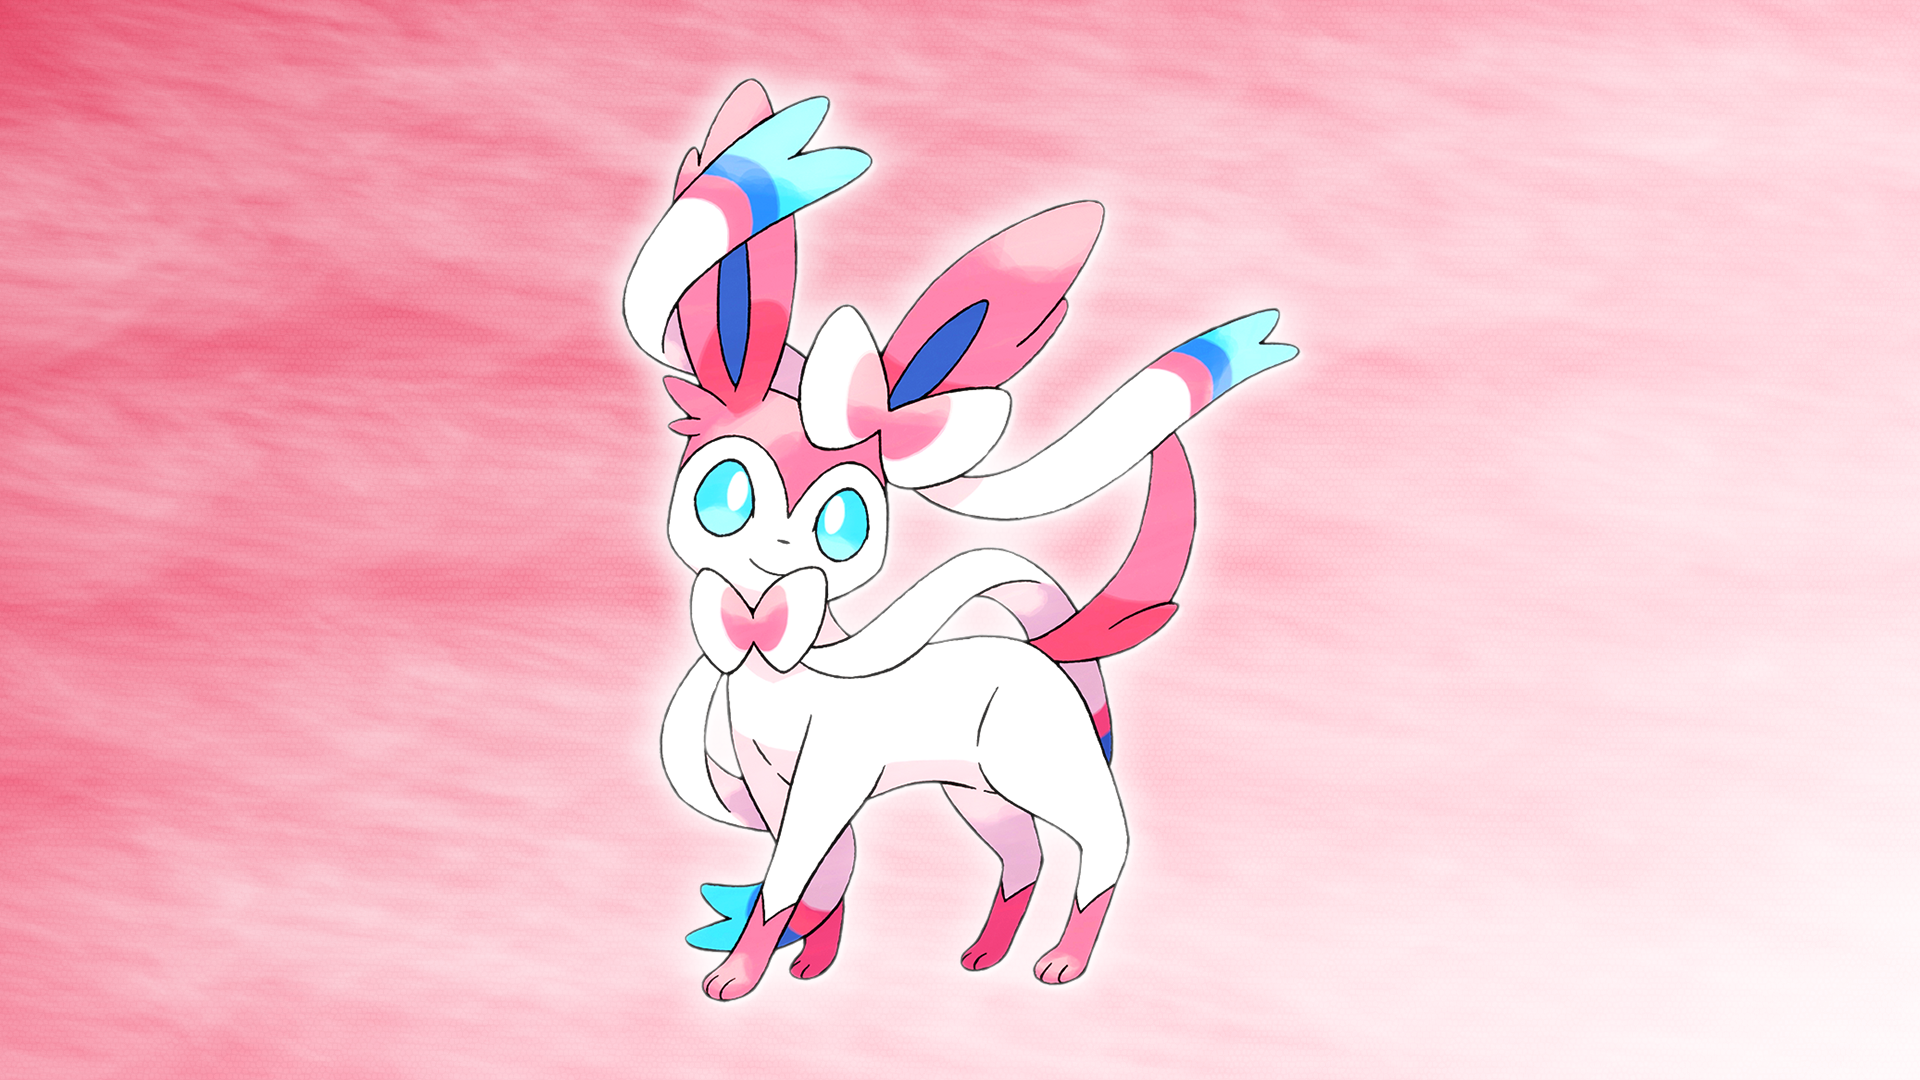 Sylveon Wallpaper by Glench on DeviantArt